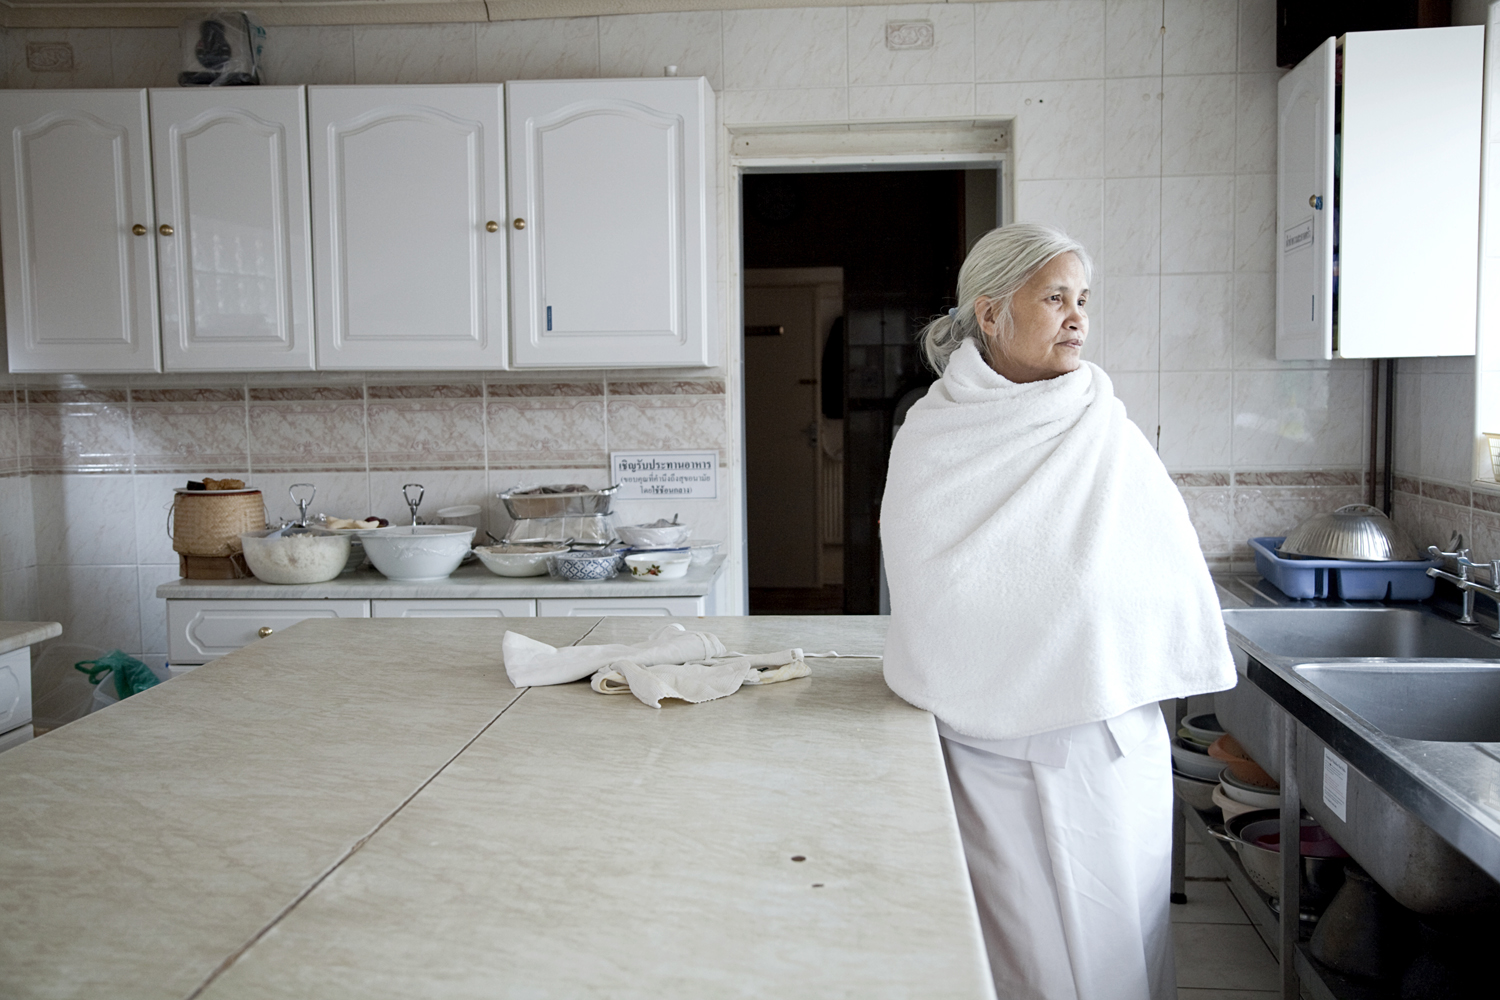 'Preacher' stands in the kitchen of the Thai Buddhist temple she established close to Soho Road in the 1970s. She owned the first Thai restaurant in Birmingham before she became a Buddhist nun, purchased the temple and brought monks over from Thailand.